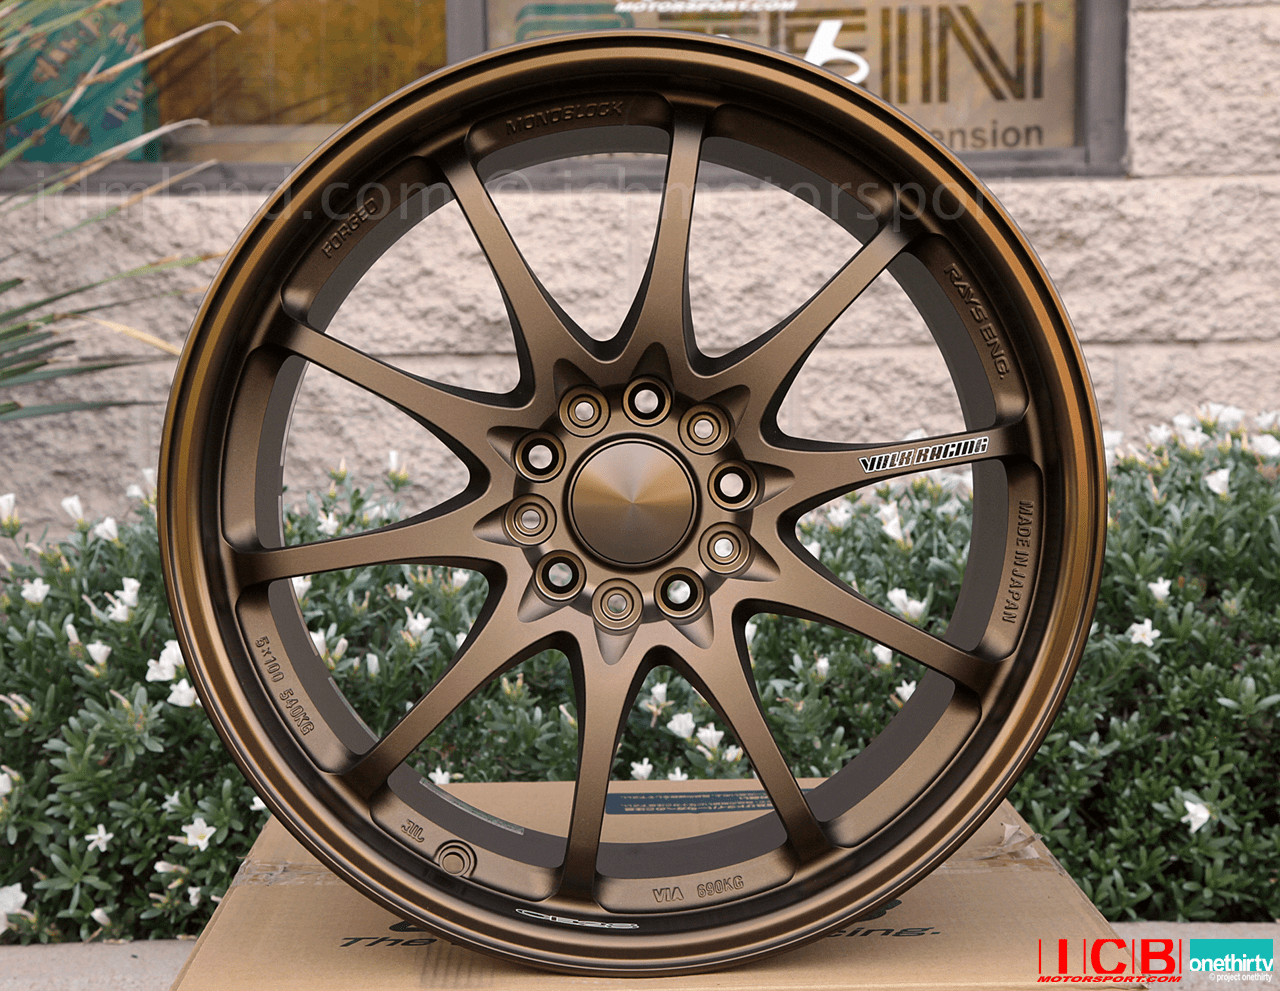 Rays Volk Racing CE28N Bronze Wheels 18X9.5 +33 Offset 5X120 Concave Face Civic FK8 CTR